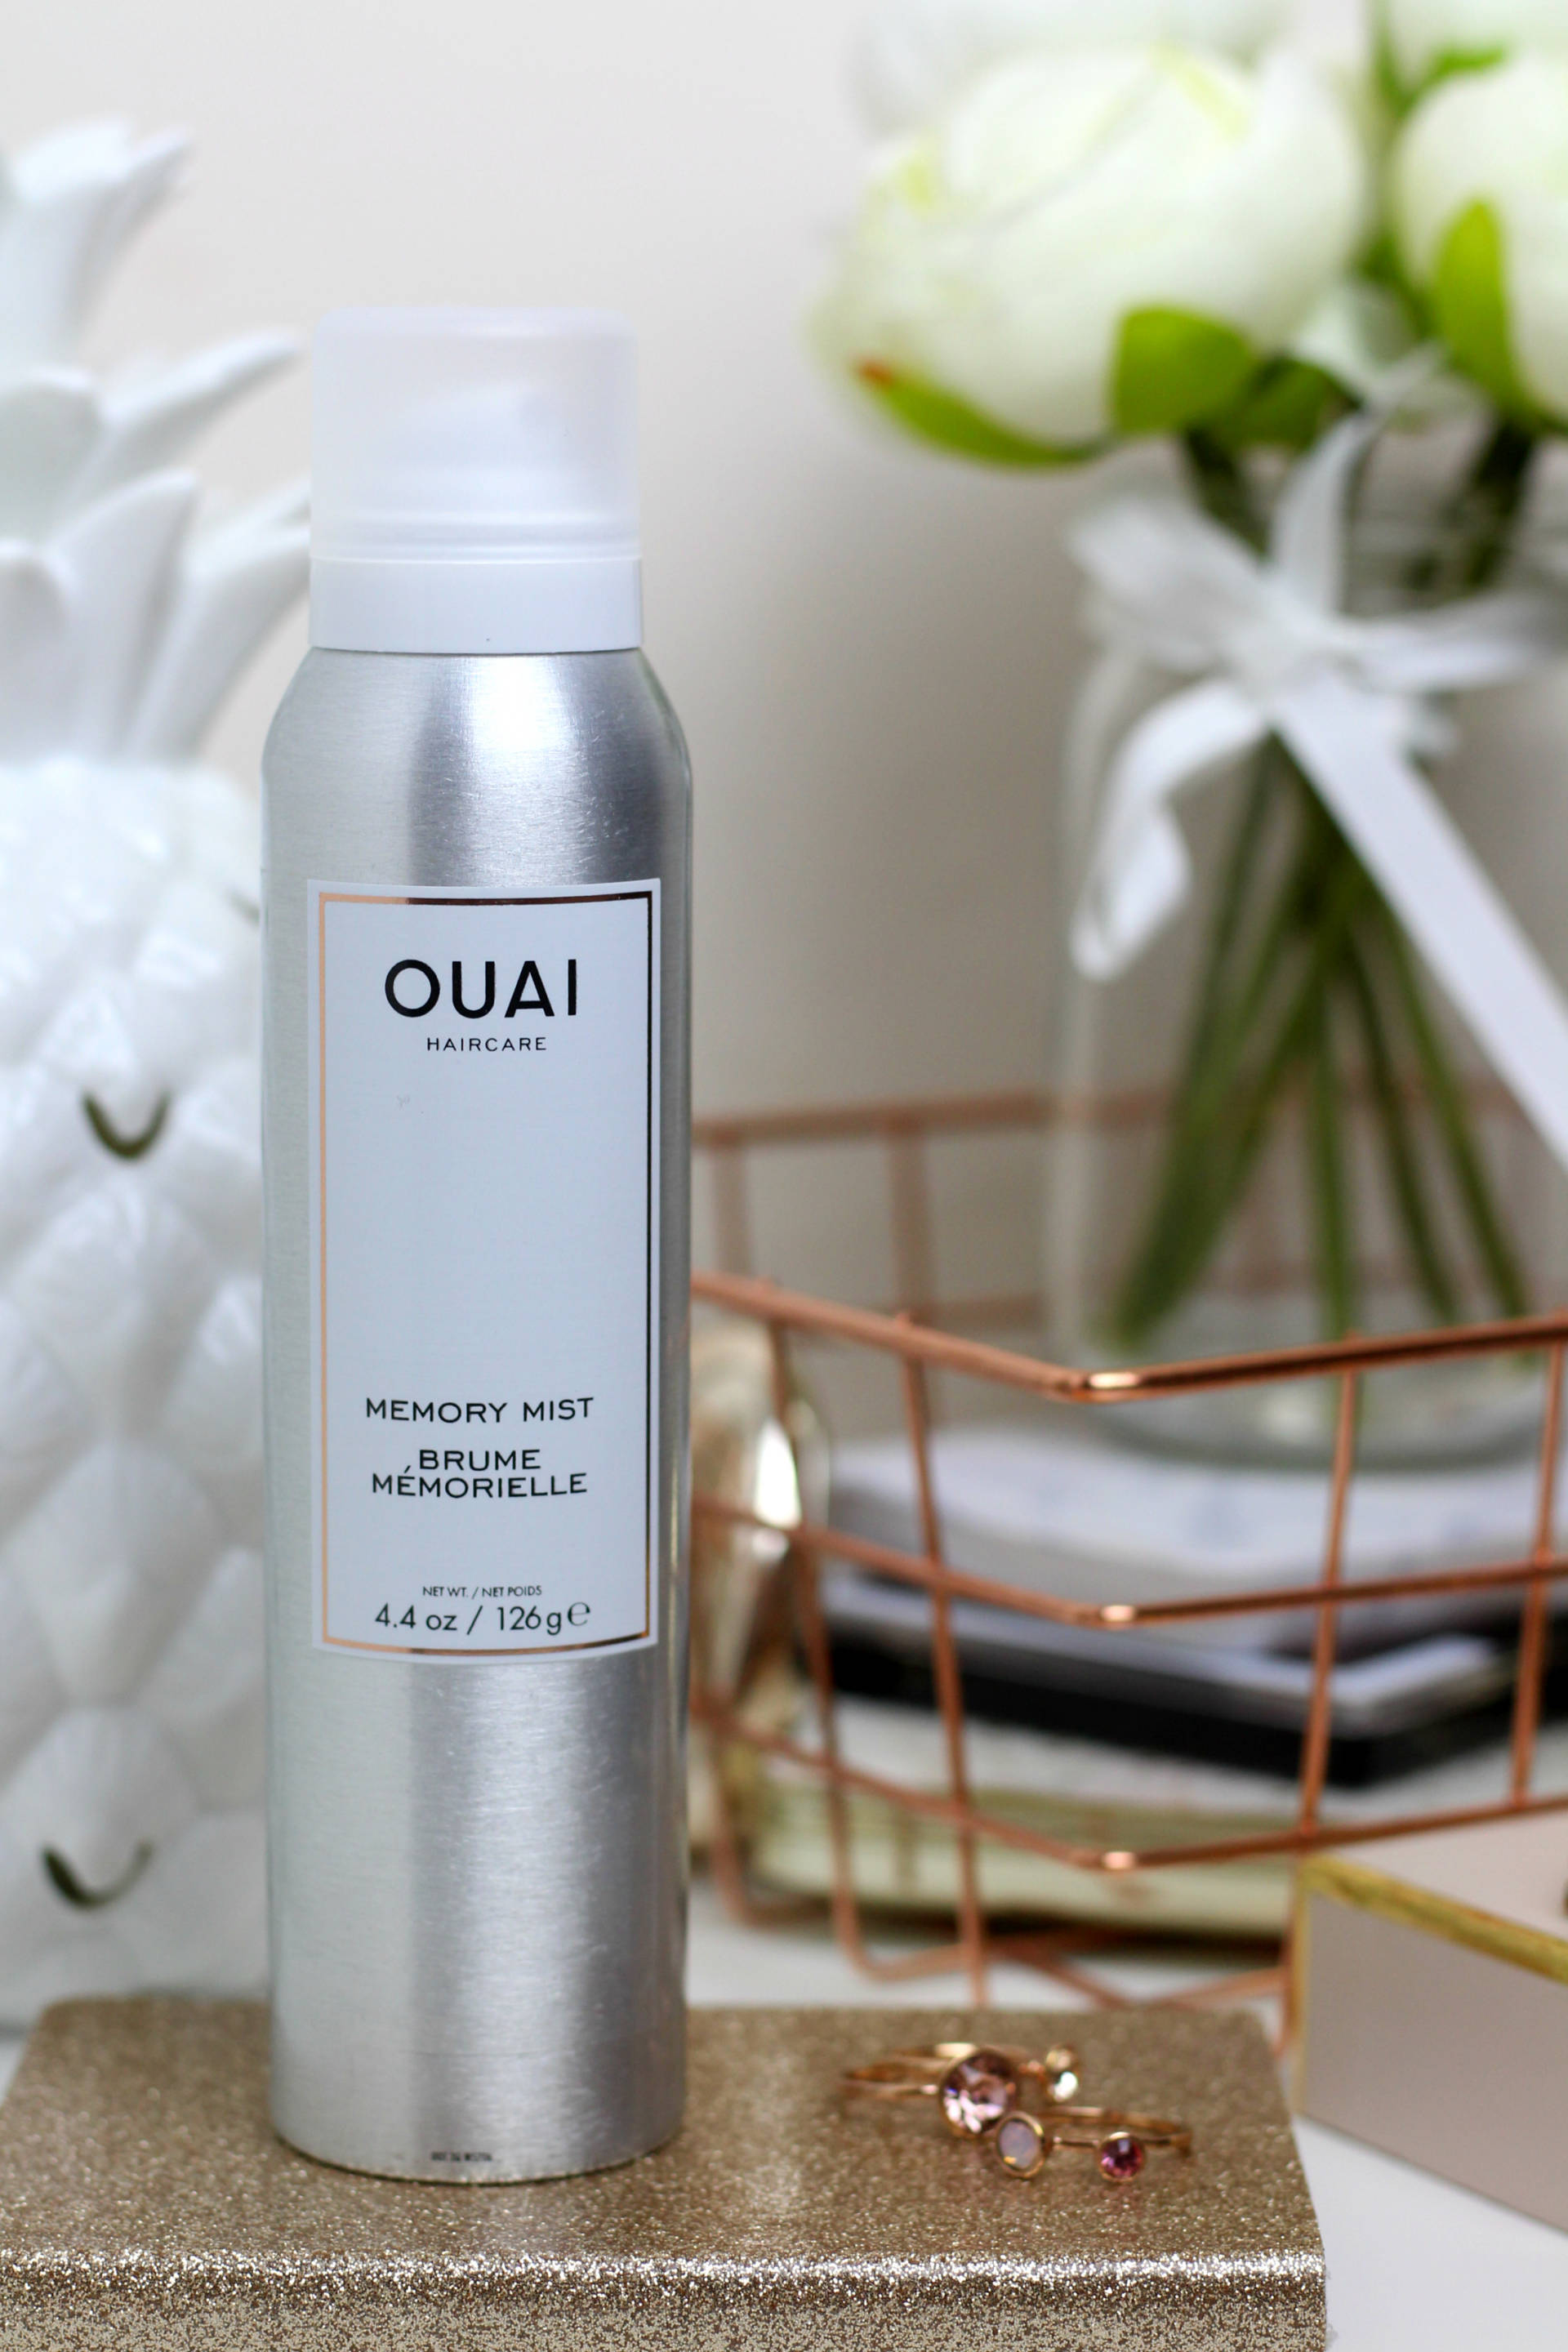 Four reasons why you need the OUAI Memory Mist in your life